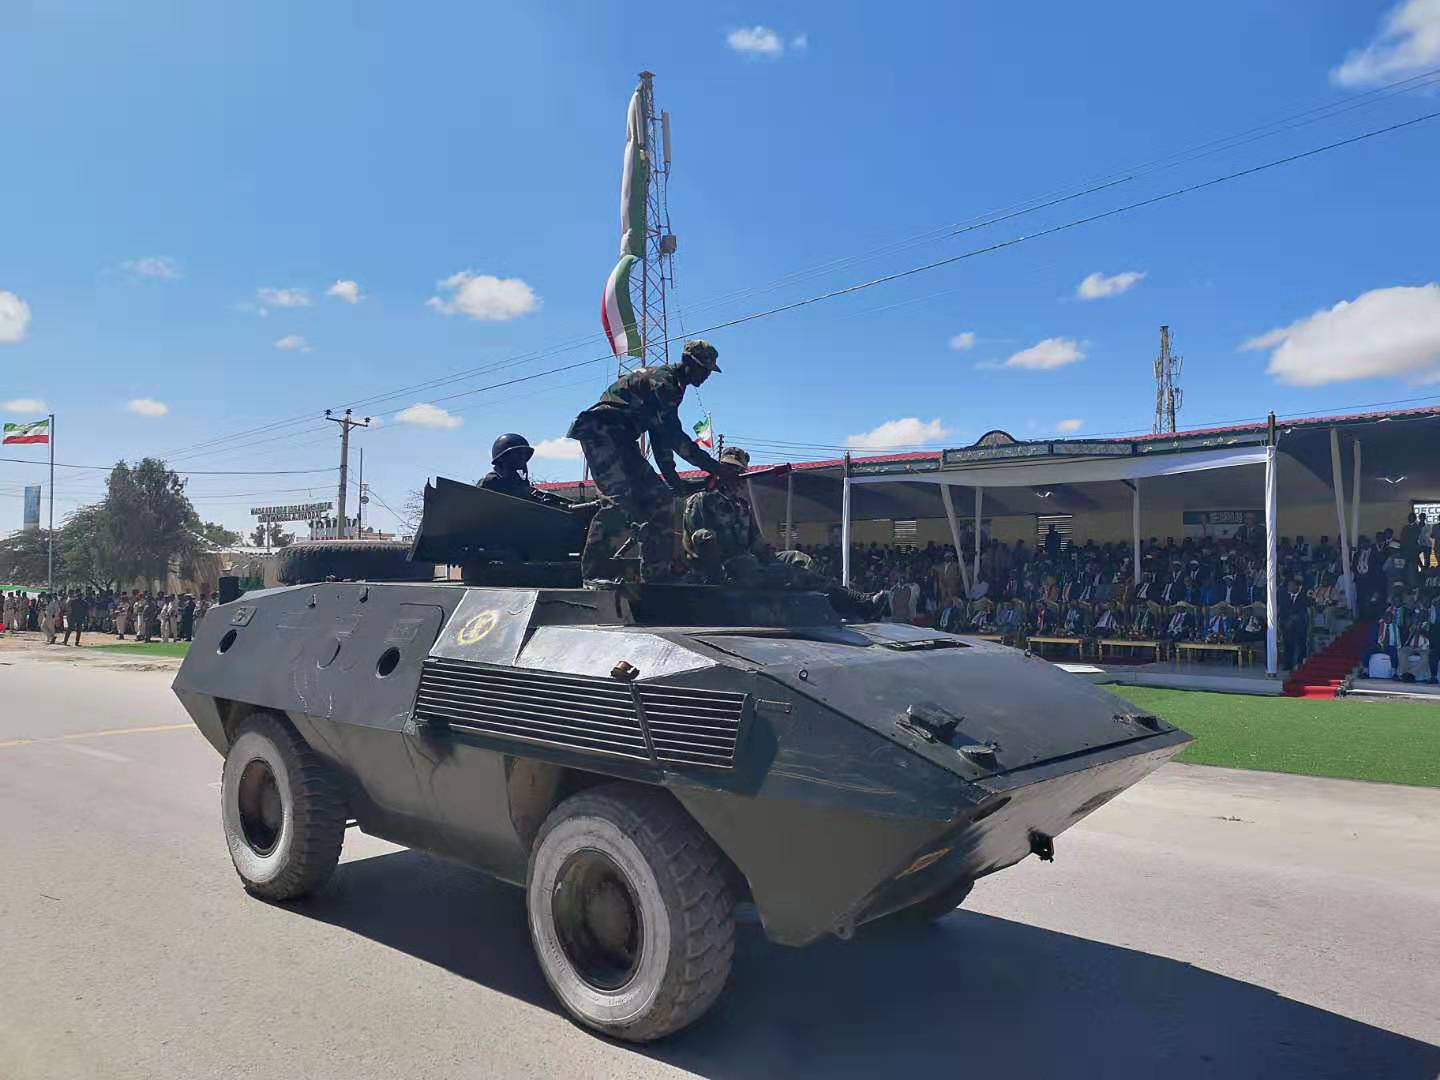 Armored vehicle at the Somaliland Independence Day Parade